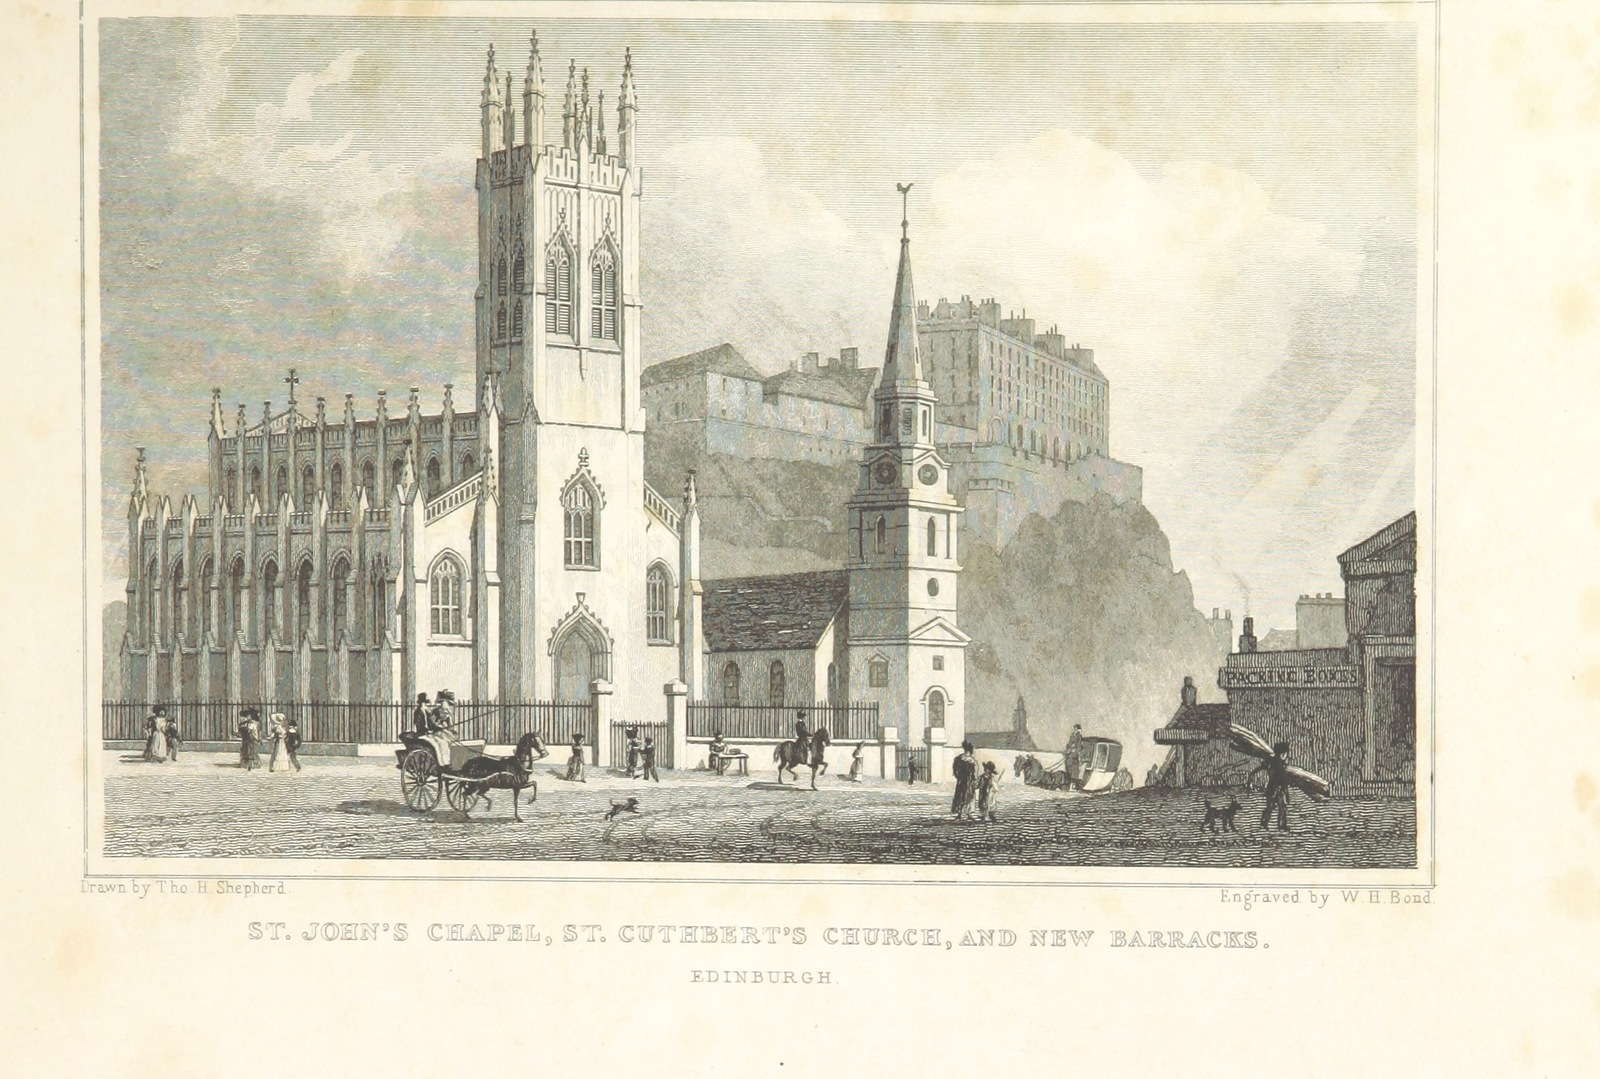 """St Cuthbert's Church, Edinburgh from """"Modern Athens, displayed in a series of views; or, Edinburgh in the nineteenth century; exhibiting the whole of the new buildings, modern improvements, antiquities, & picturesque scenery of the Scottish metropolis & its environs, from original drawings by Mr. T. H. Shepherd. With historical, topographical & critical illustrations [by John Britton]"""""""